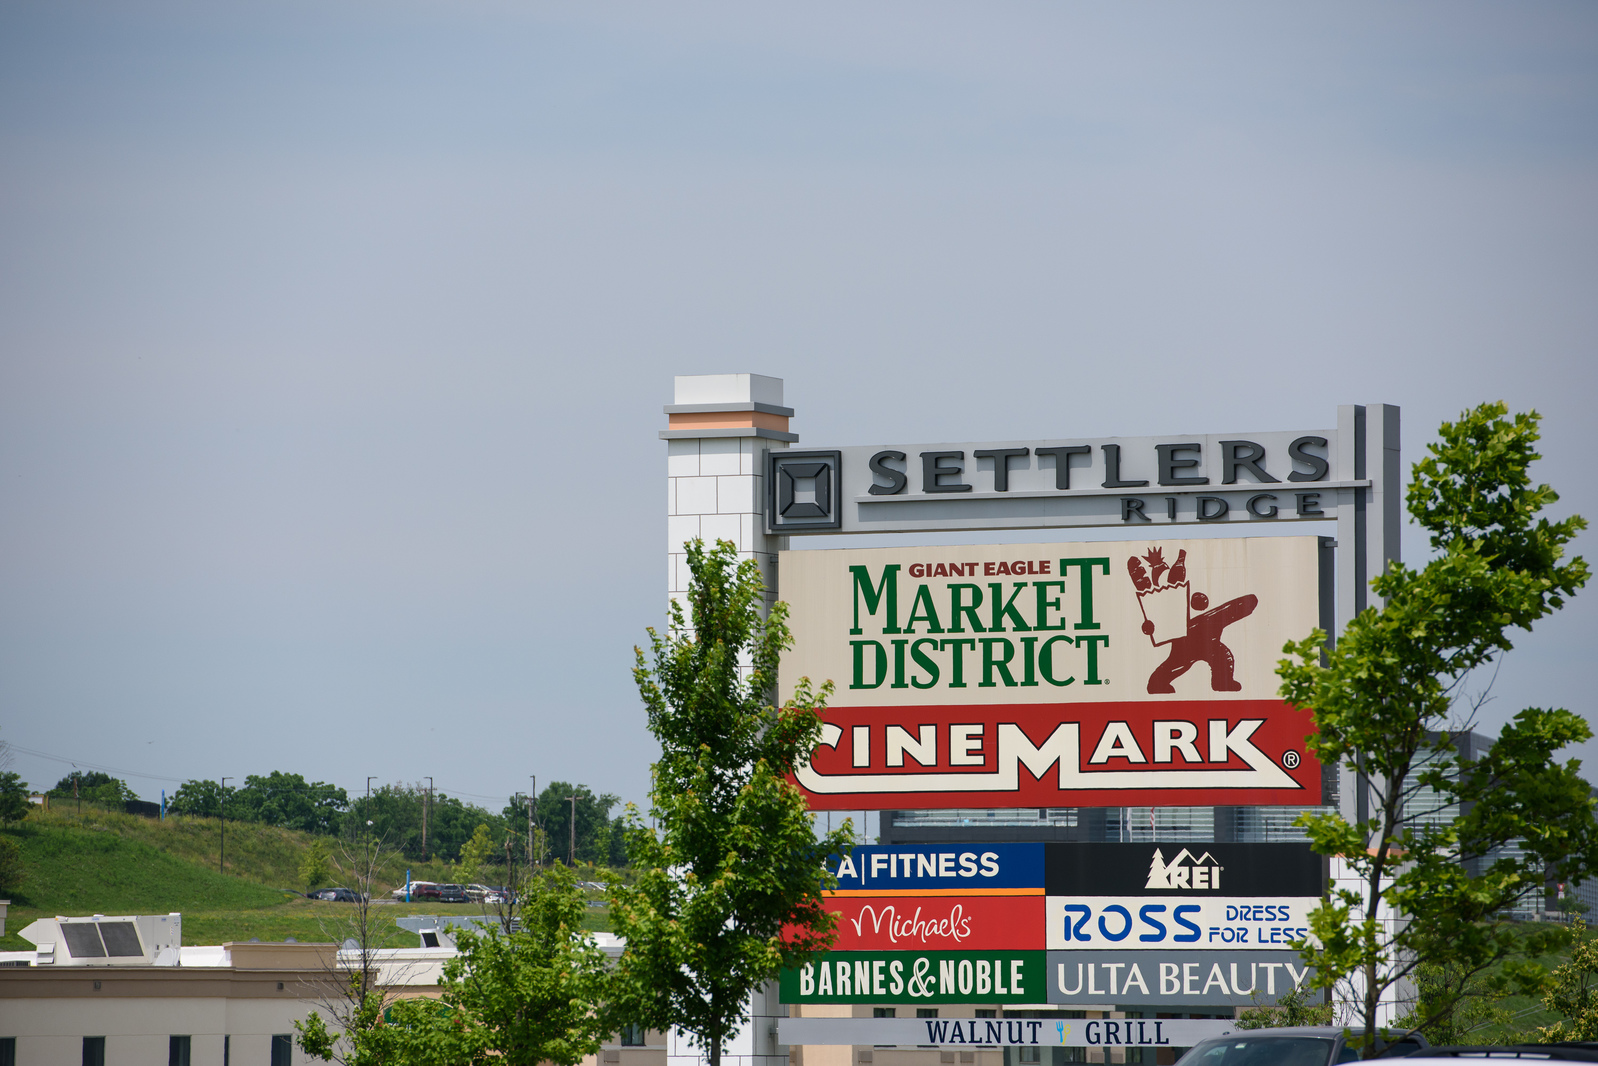 Running errands is a breeze with the top shops of Settlers Ridge just a few miles away!